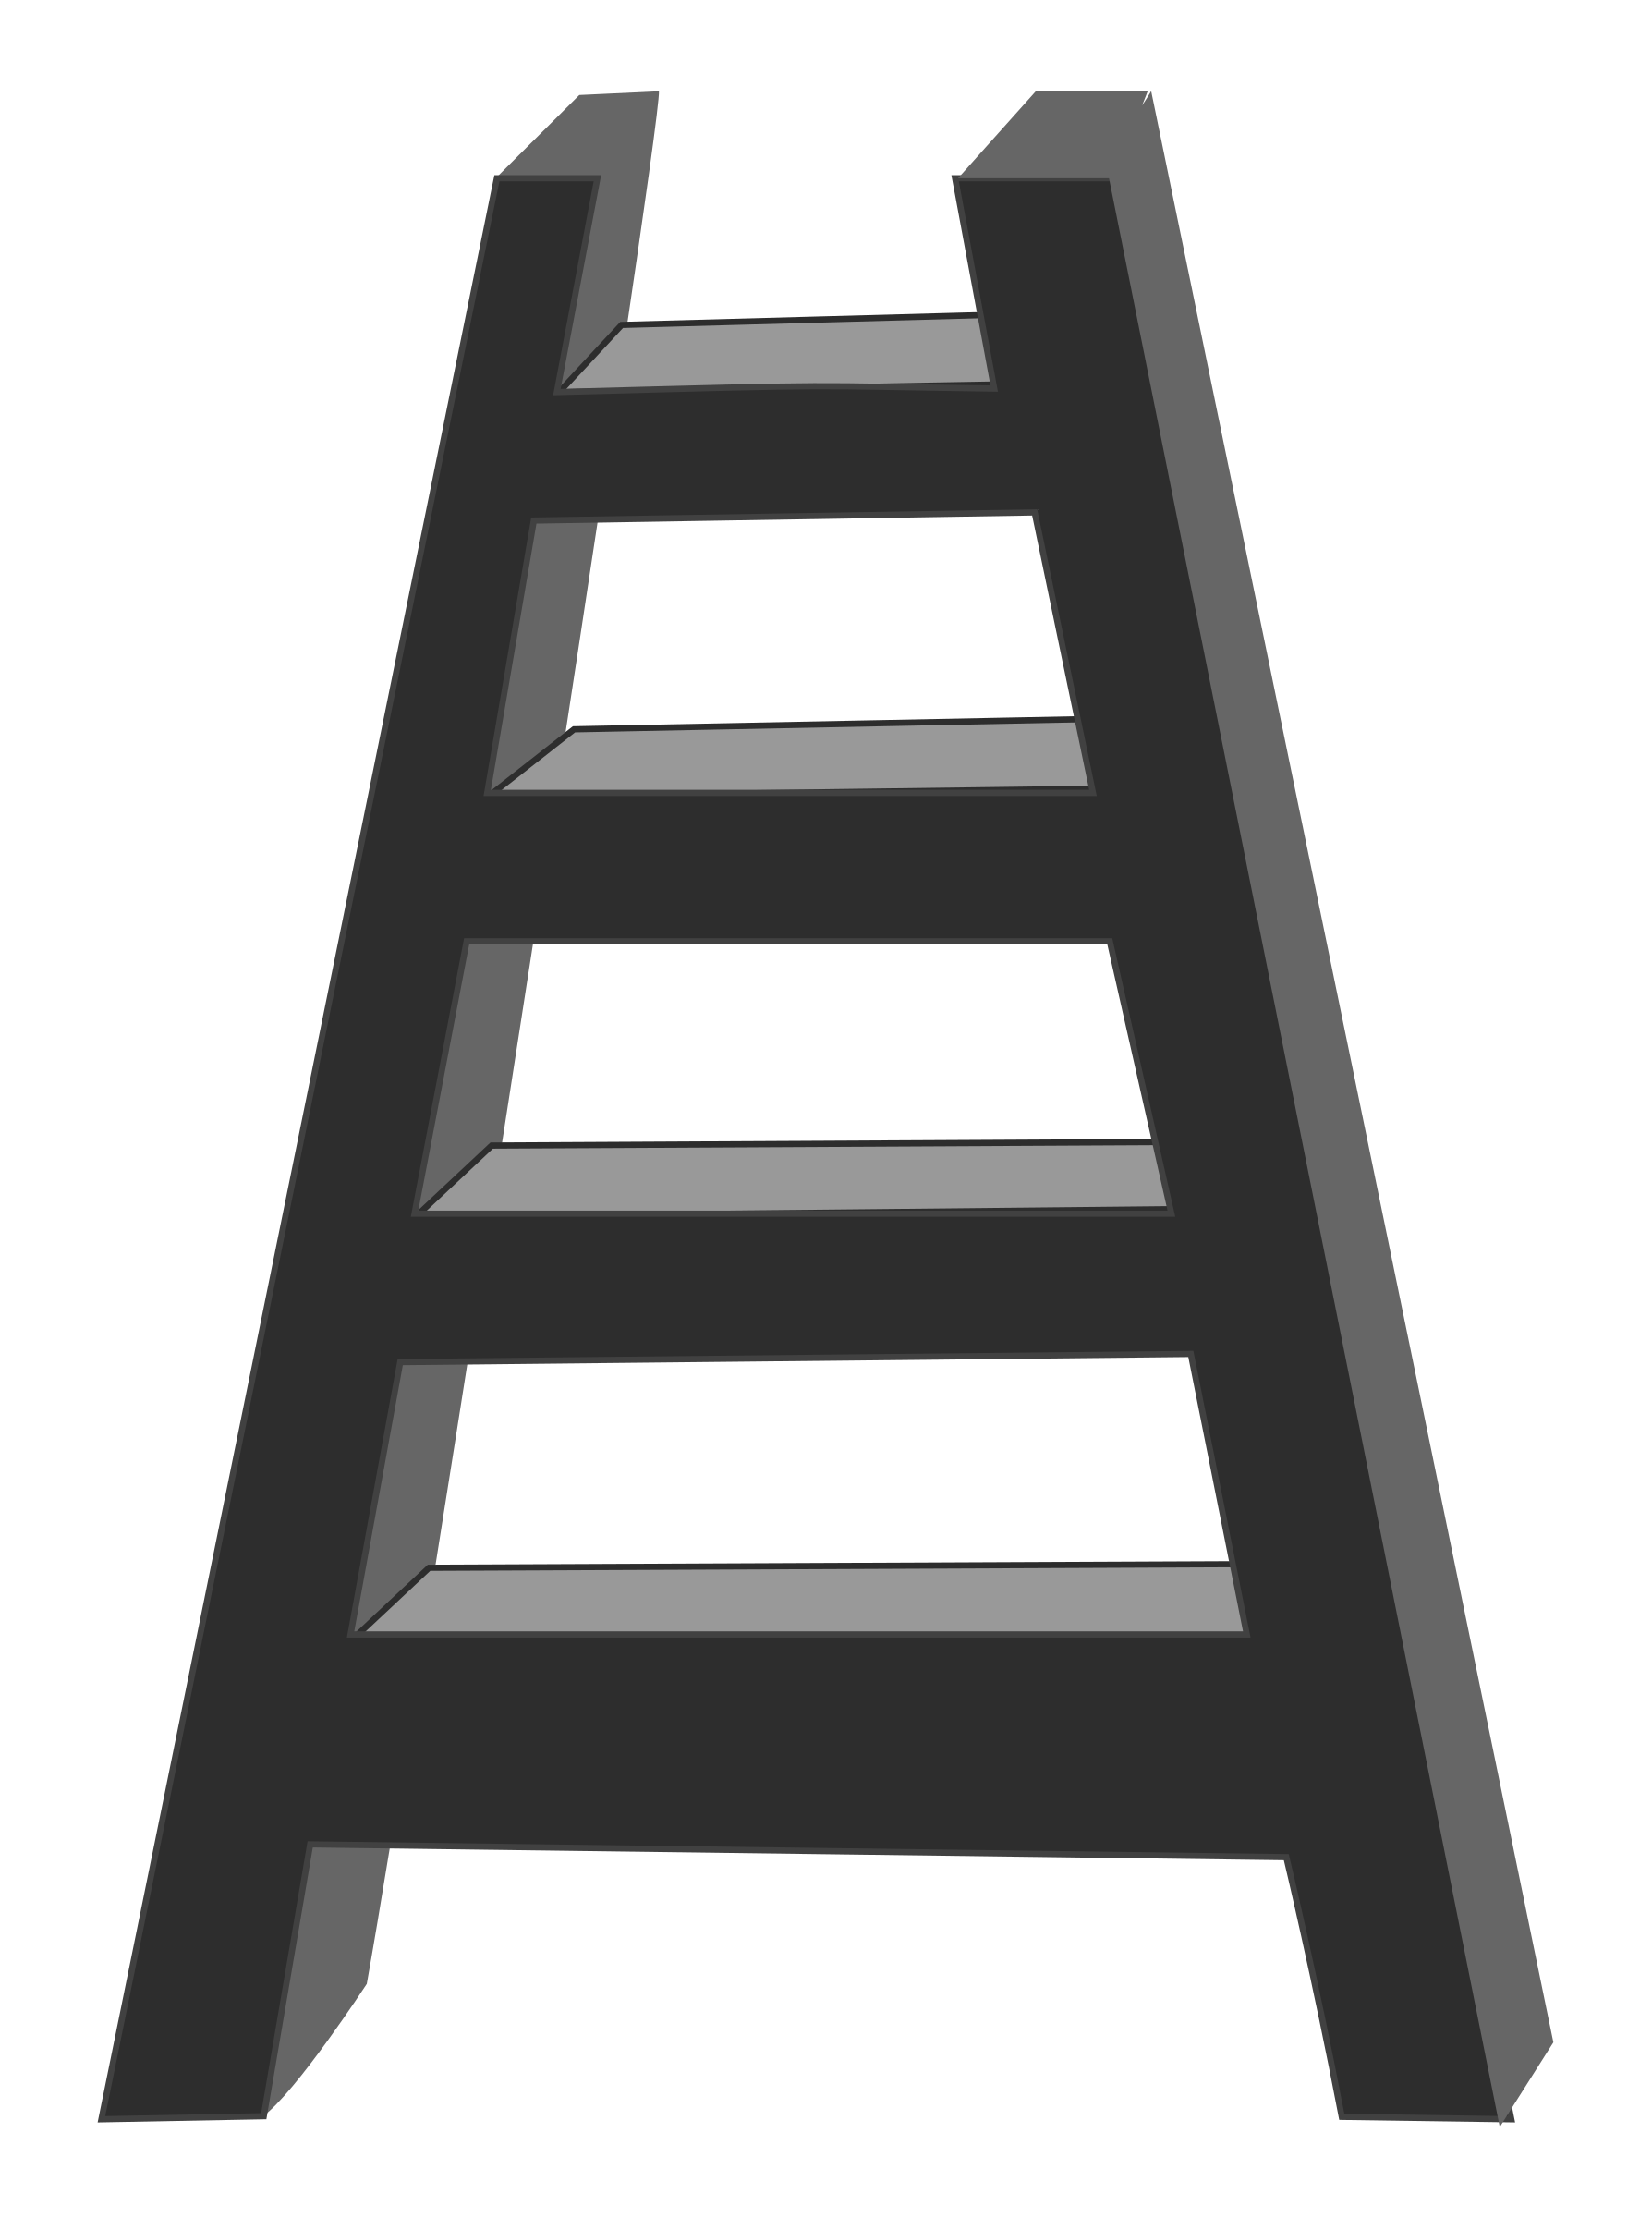 Ladder clipart bamboo ladder. Ladders png wooden rust